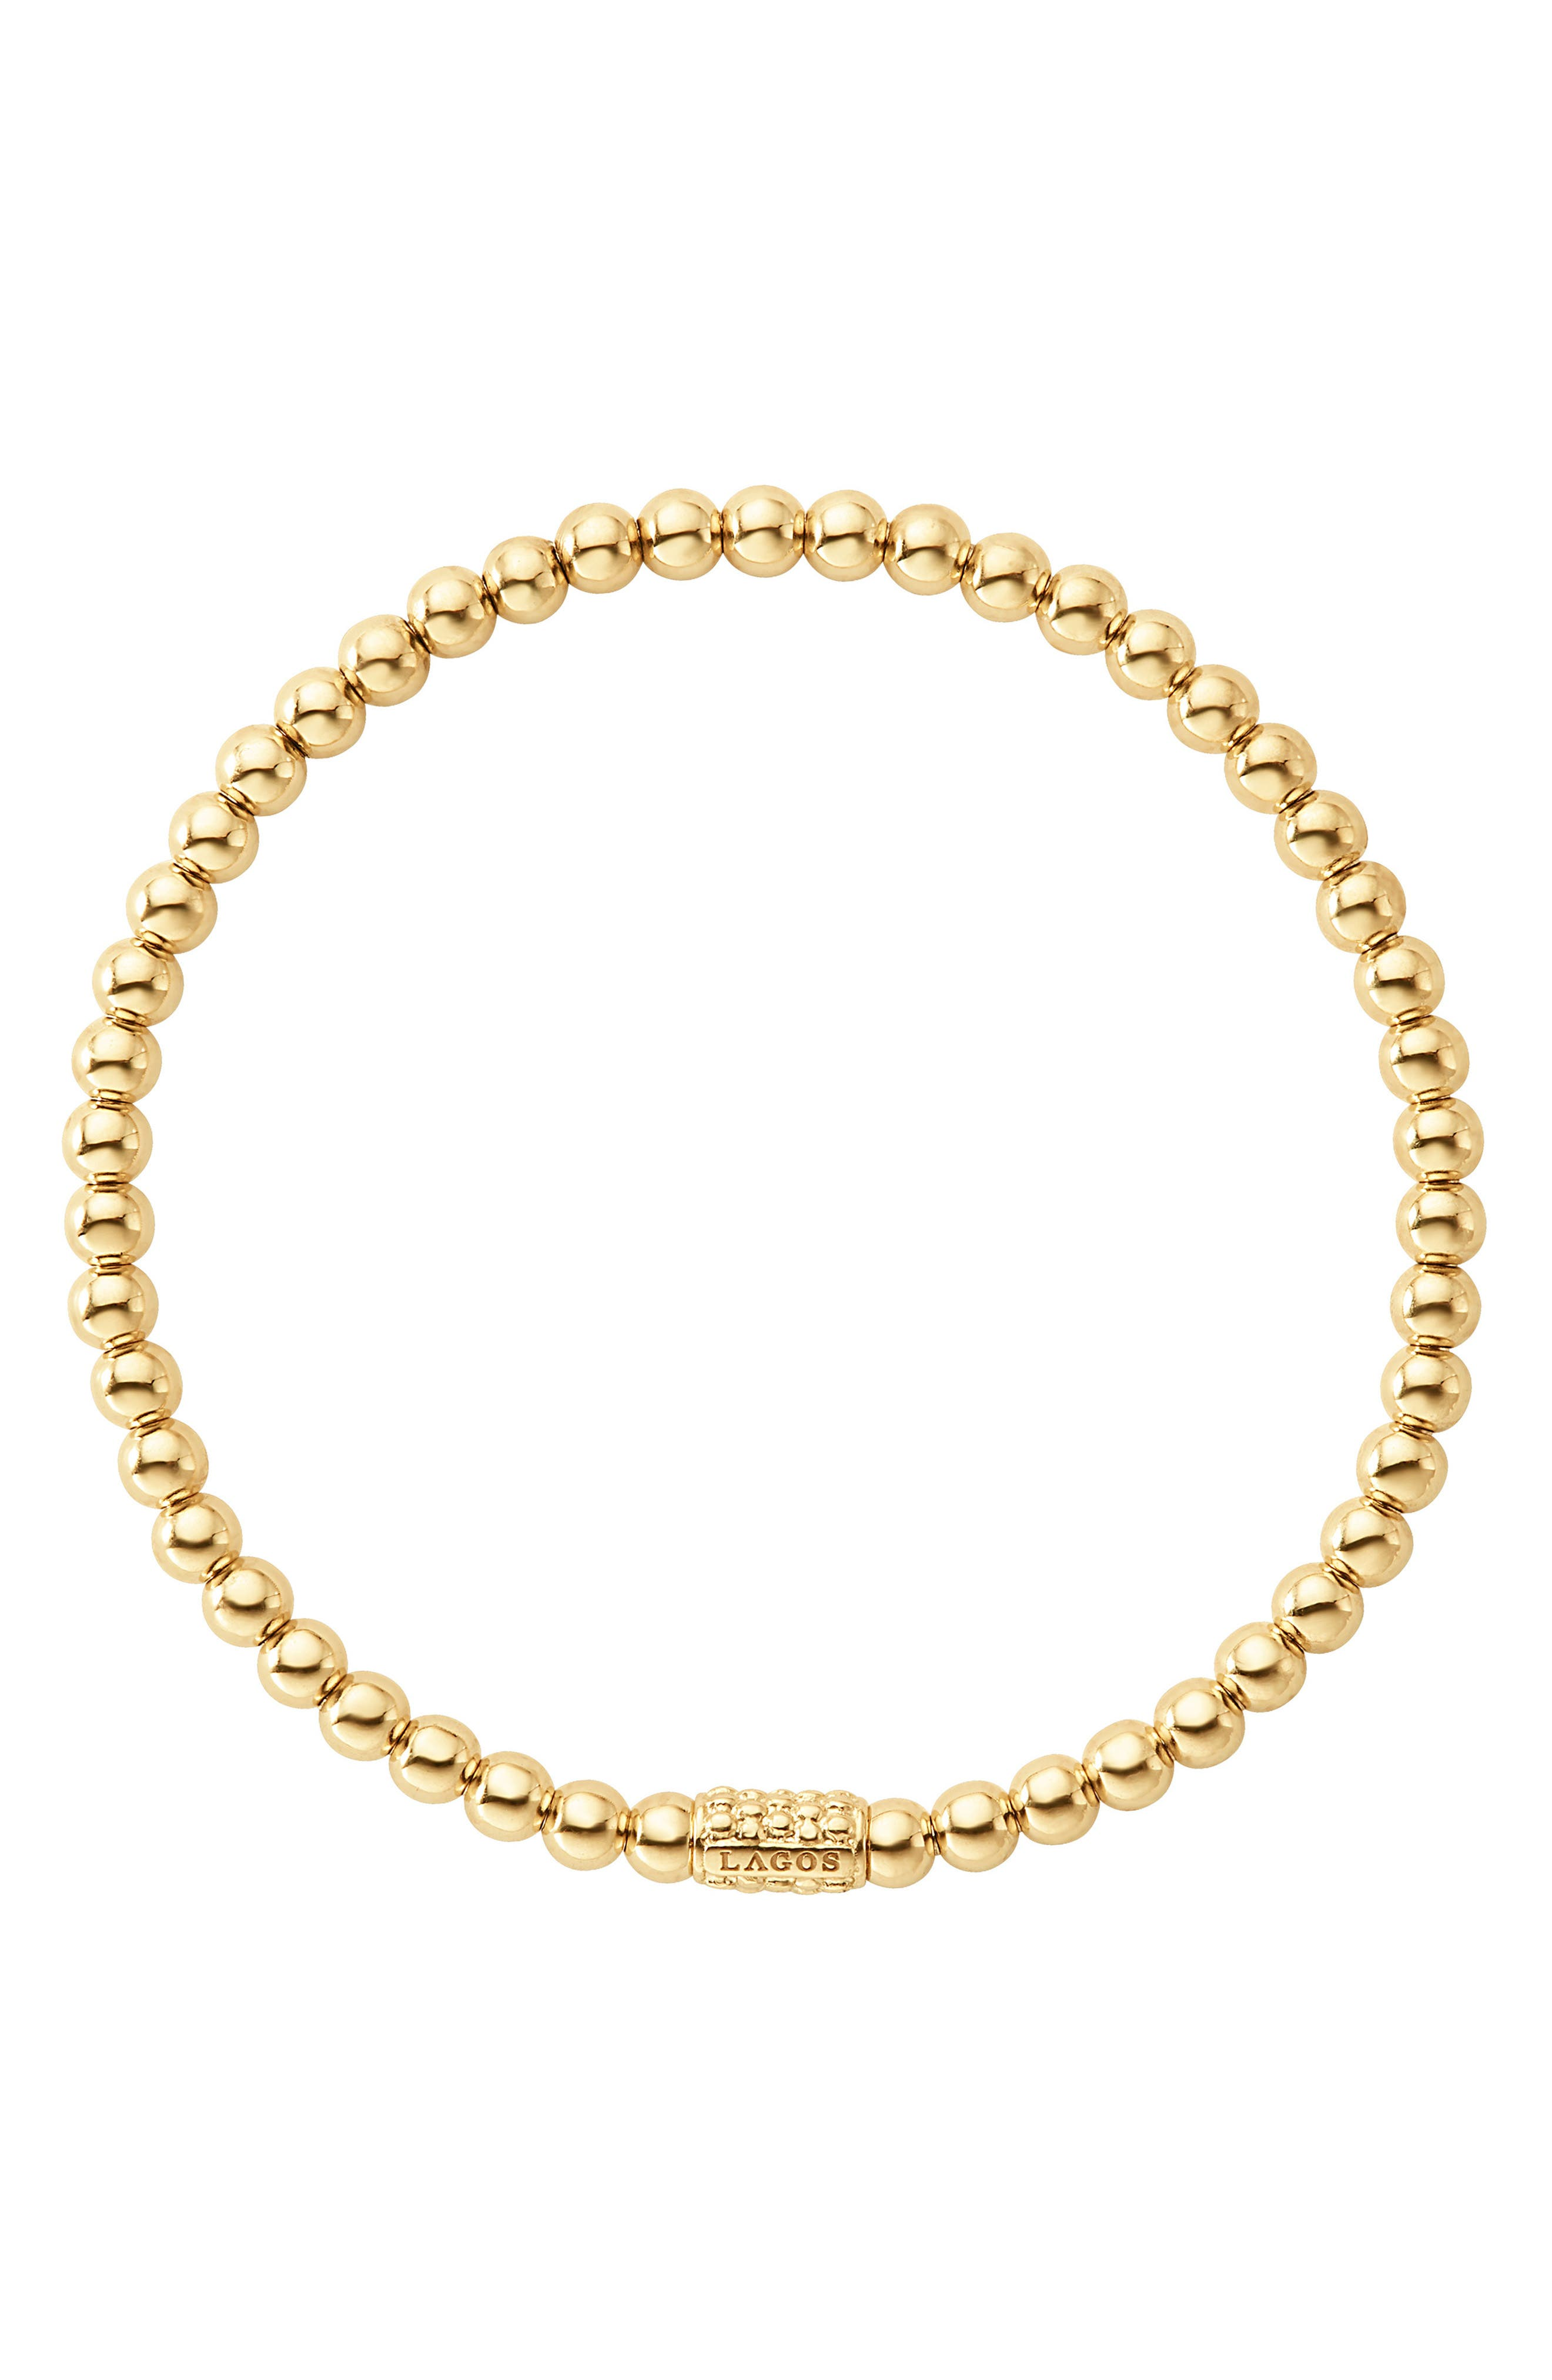 Caviar Gold Ball Stretch Bracelet,                             Alternate thumbnail 4, color,                             Gold